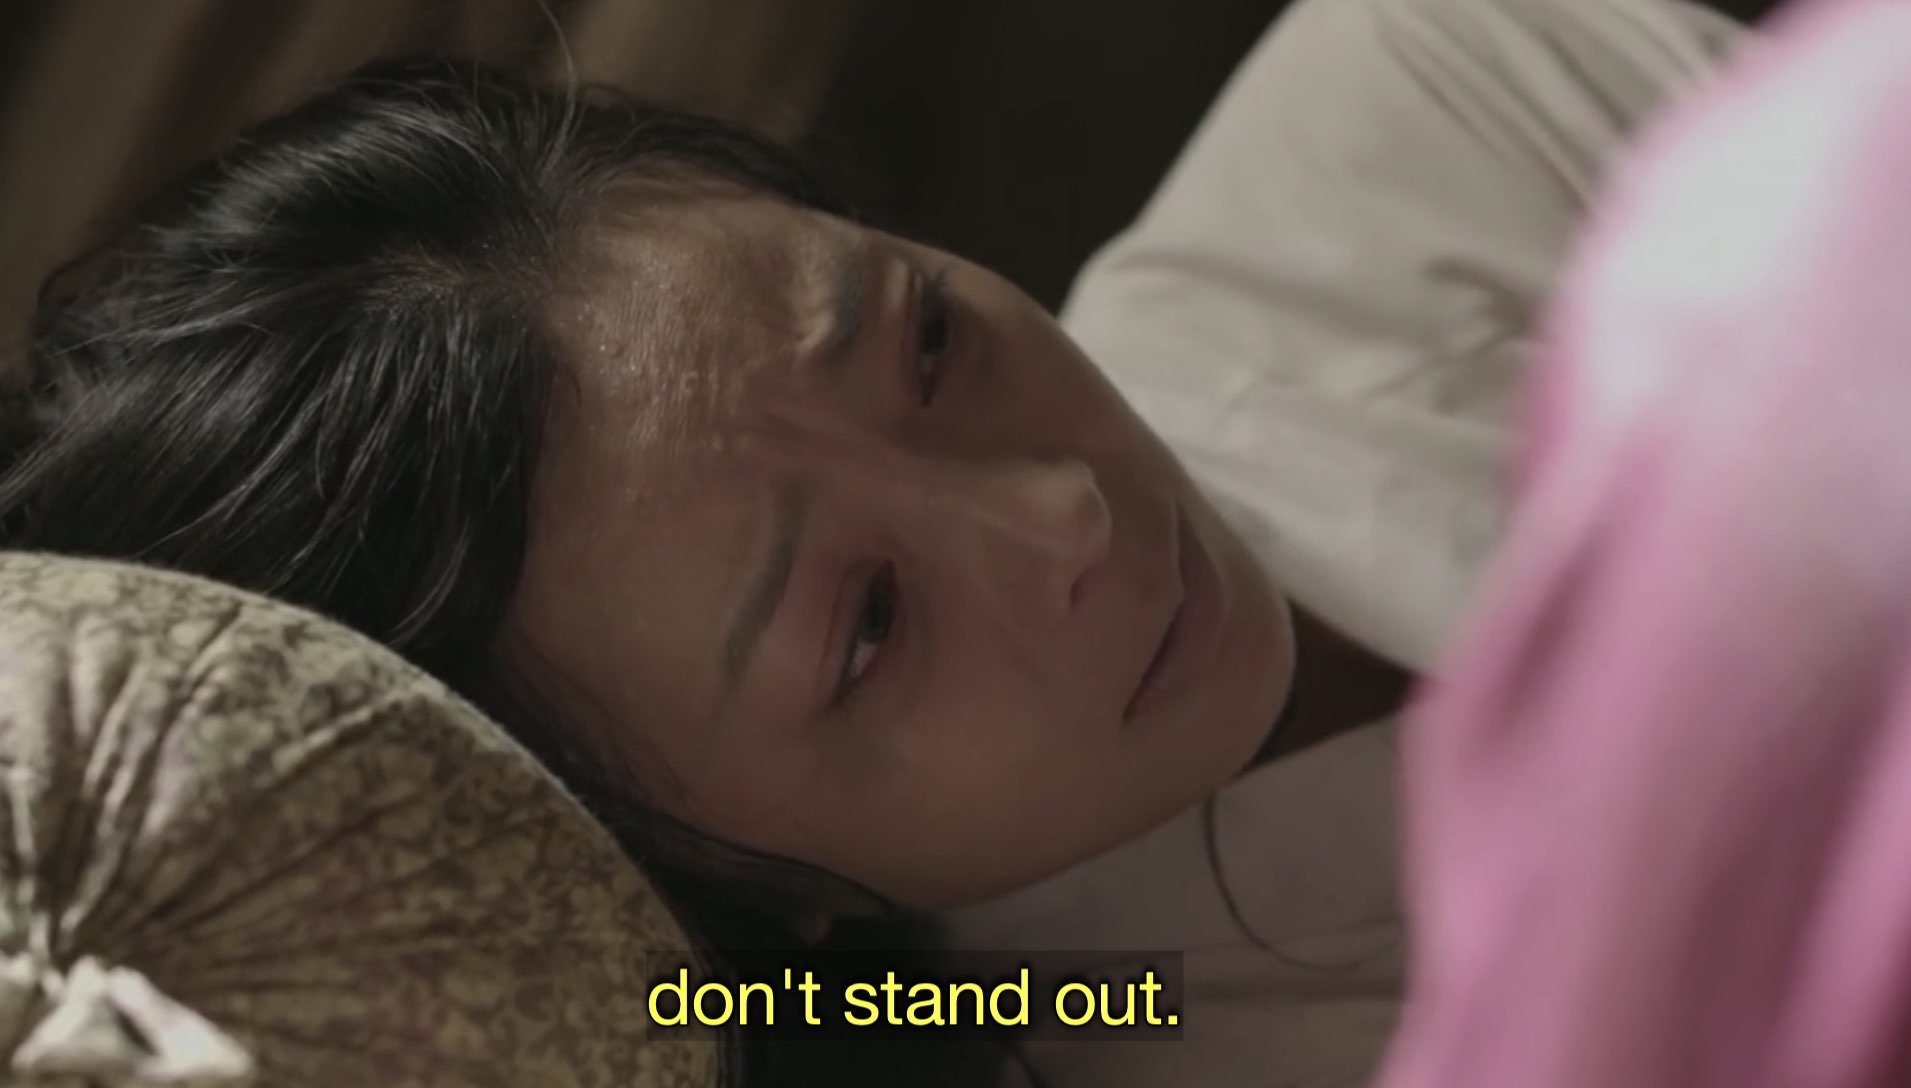 Ming Lan's little mother gives dying advice: Don't stand out.